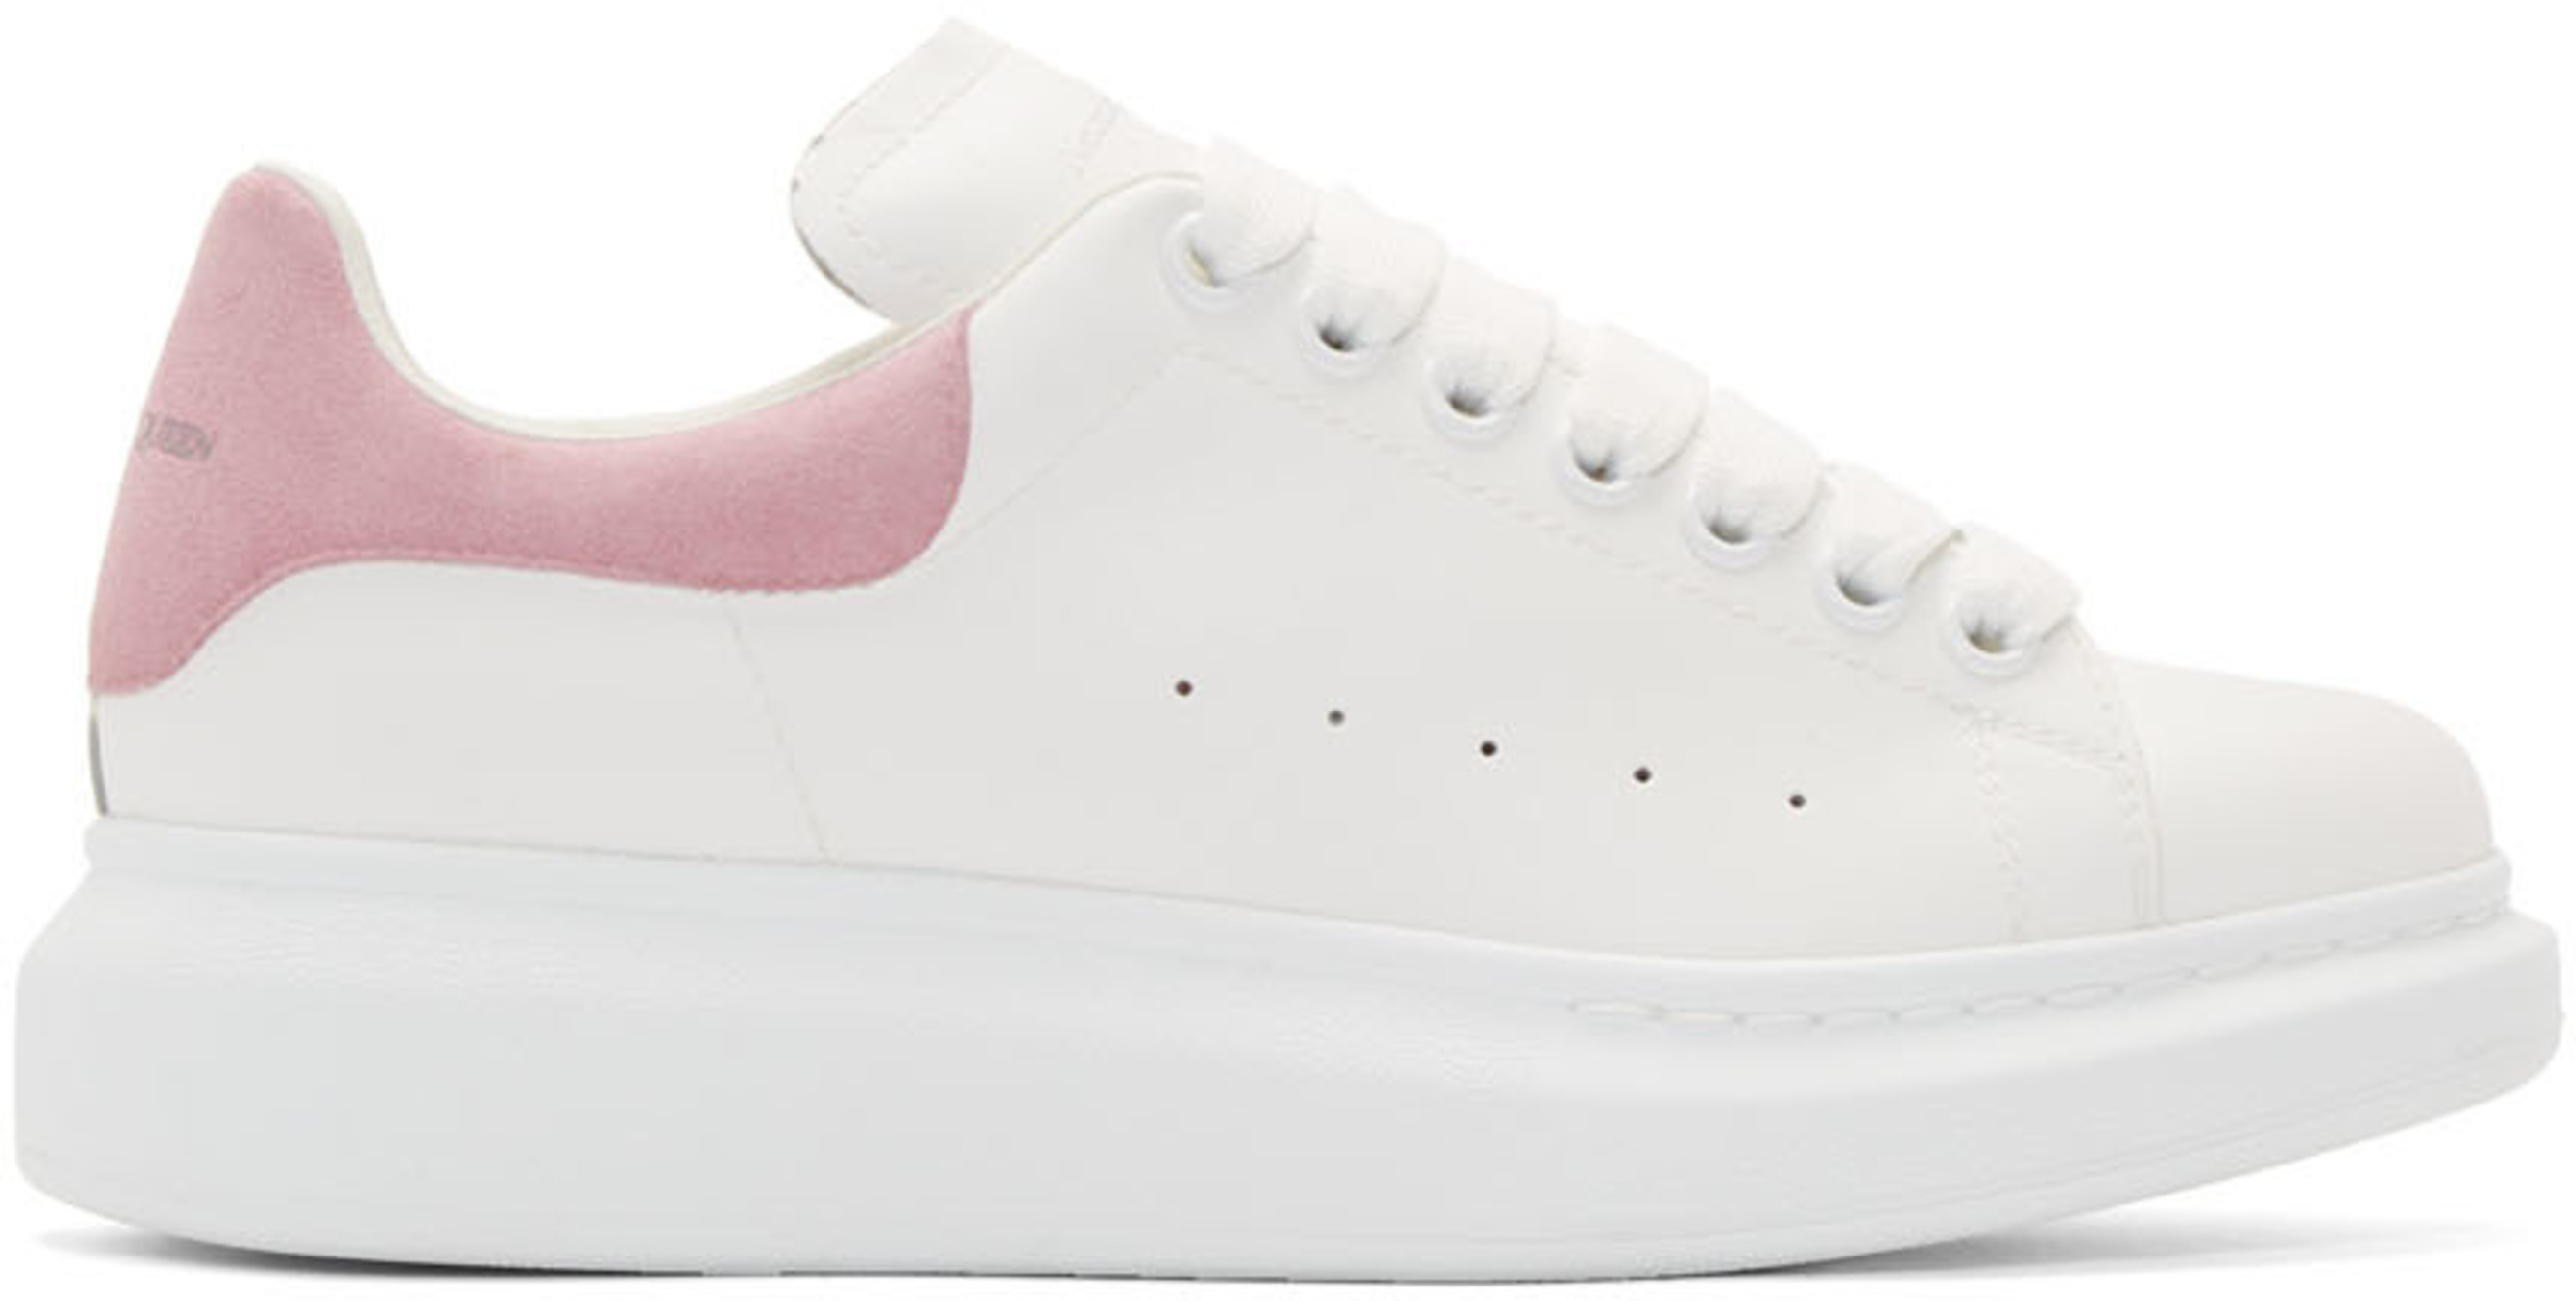 SSENSE Exclusive White & Pink Oversized Sneakers